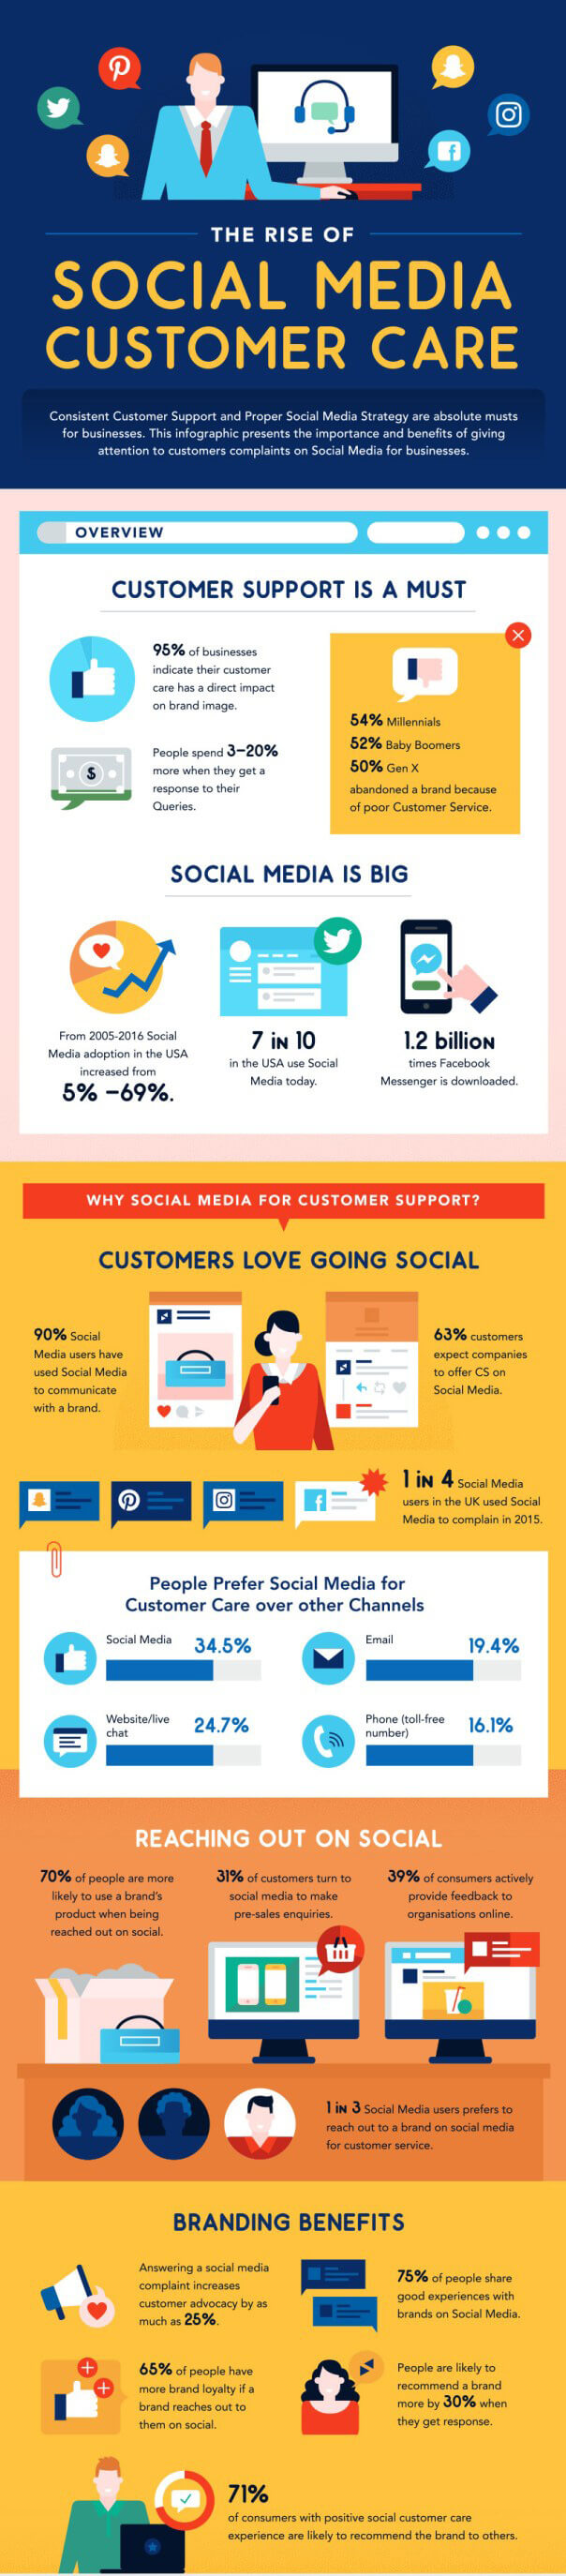 How-to-Use-Social-Media-for-Customer-Service-full_01